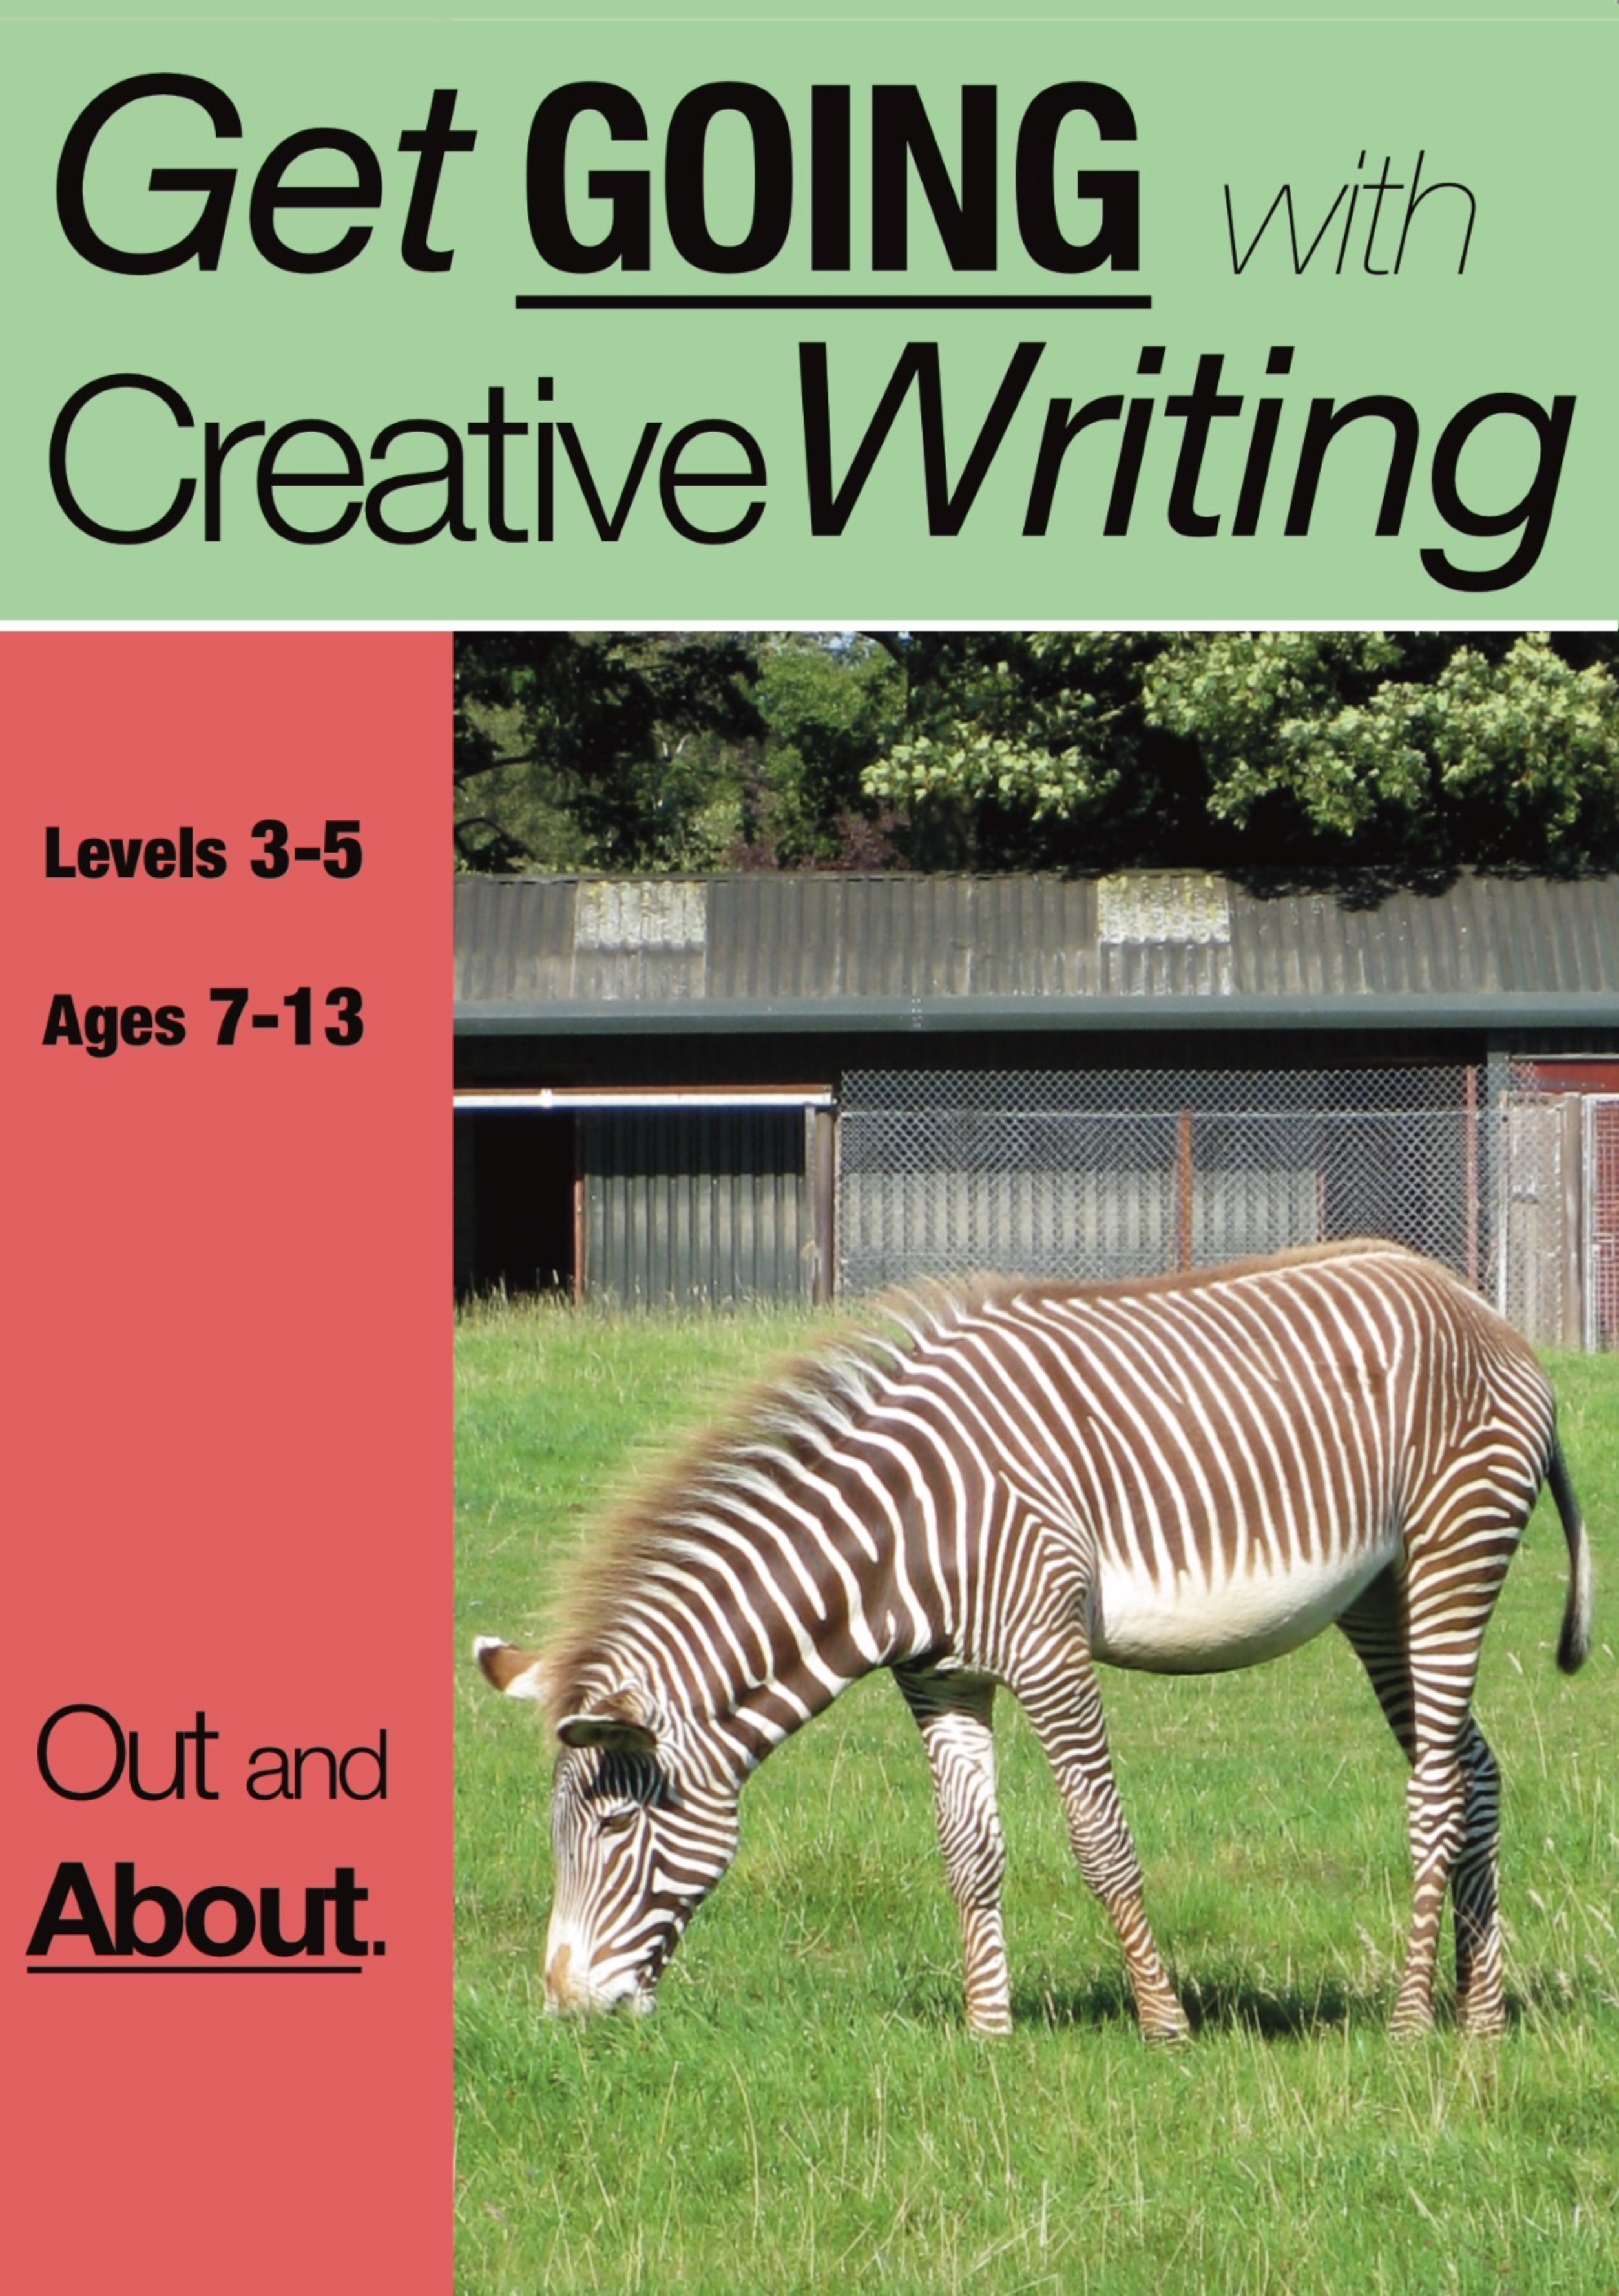 Get Going With Creative Writing (Complete Series books 1-5) (7-11) Print Versions